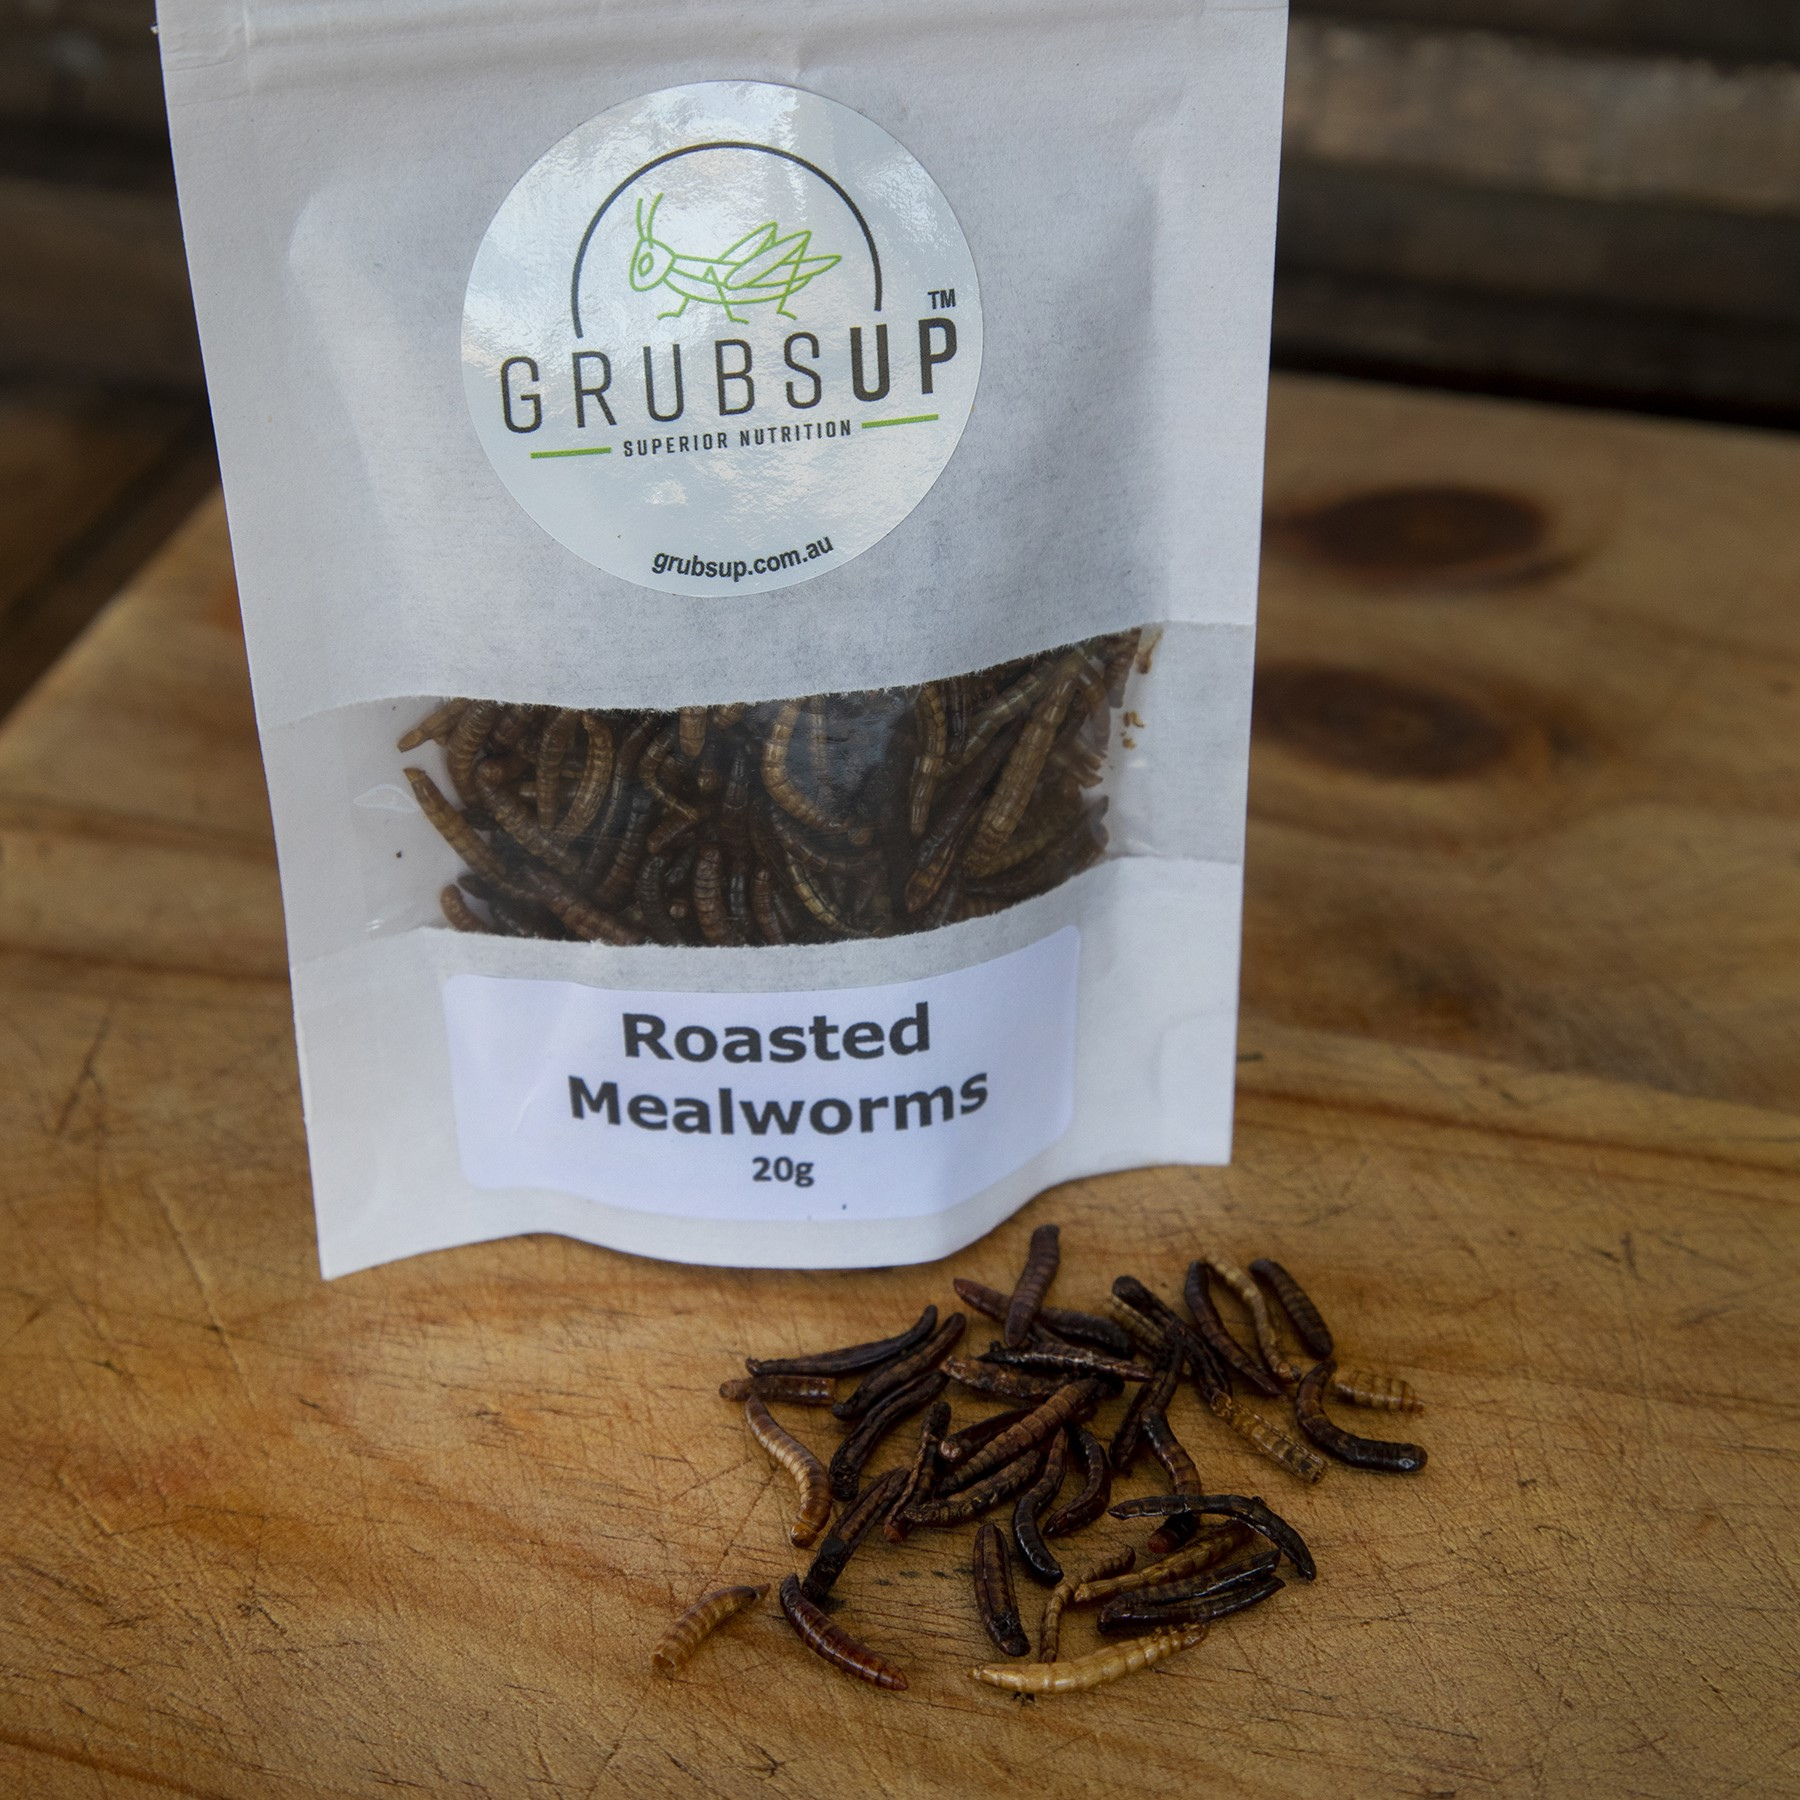 Superior Nutrition Products | Our Products | Grubs Up | Best Selling Roast Cricket Protein | Roasted Crickets Grinder Refill | Roasted Cricket Protein Bar | Best Roasted Crickets | Best Roasted Mealworms